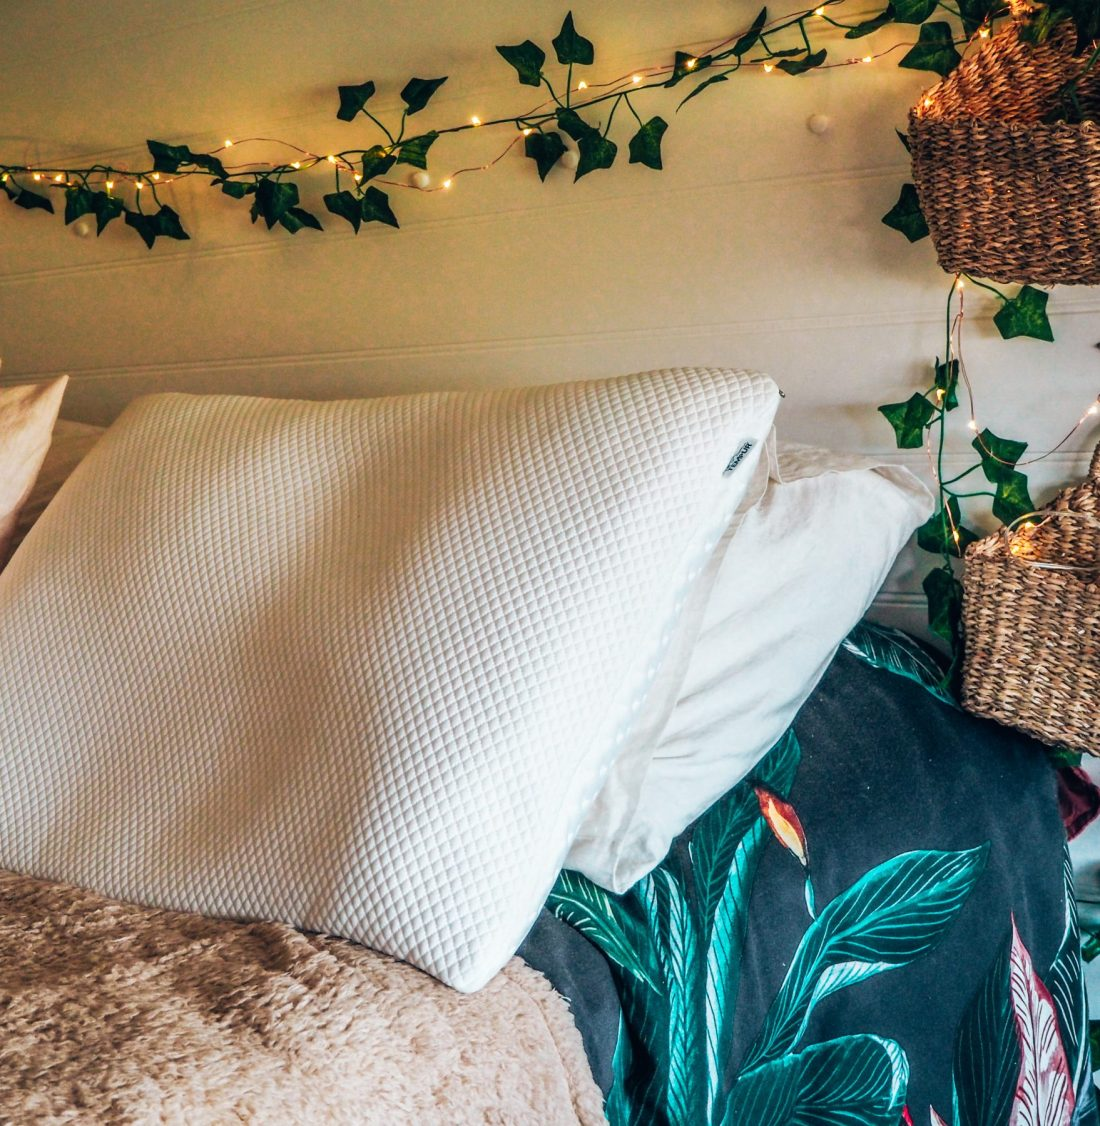 TEMPUR memory foam pillow in camper van with fairy lights and plants, seagrass baskets. best places to sleep